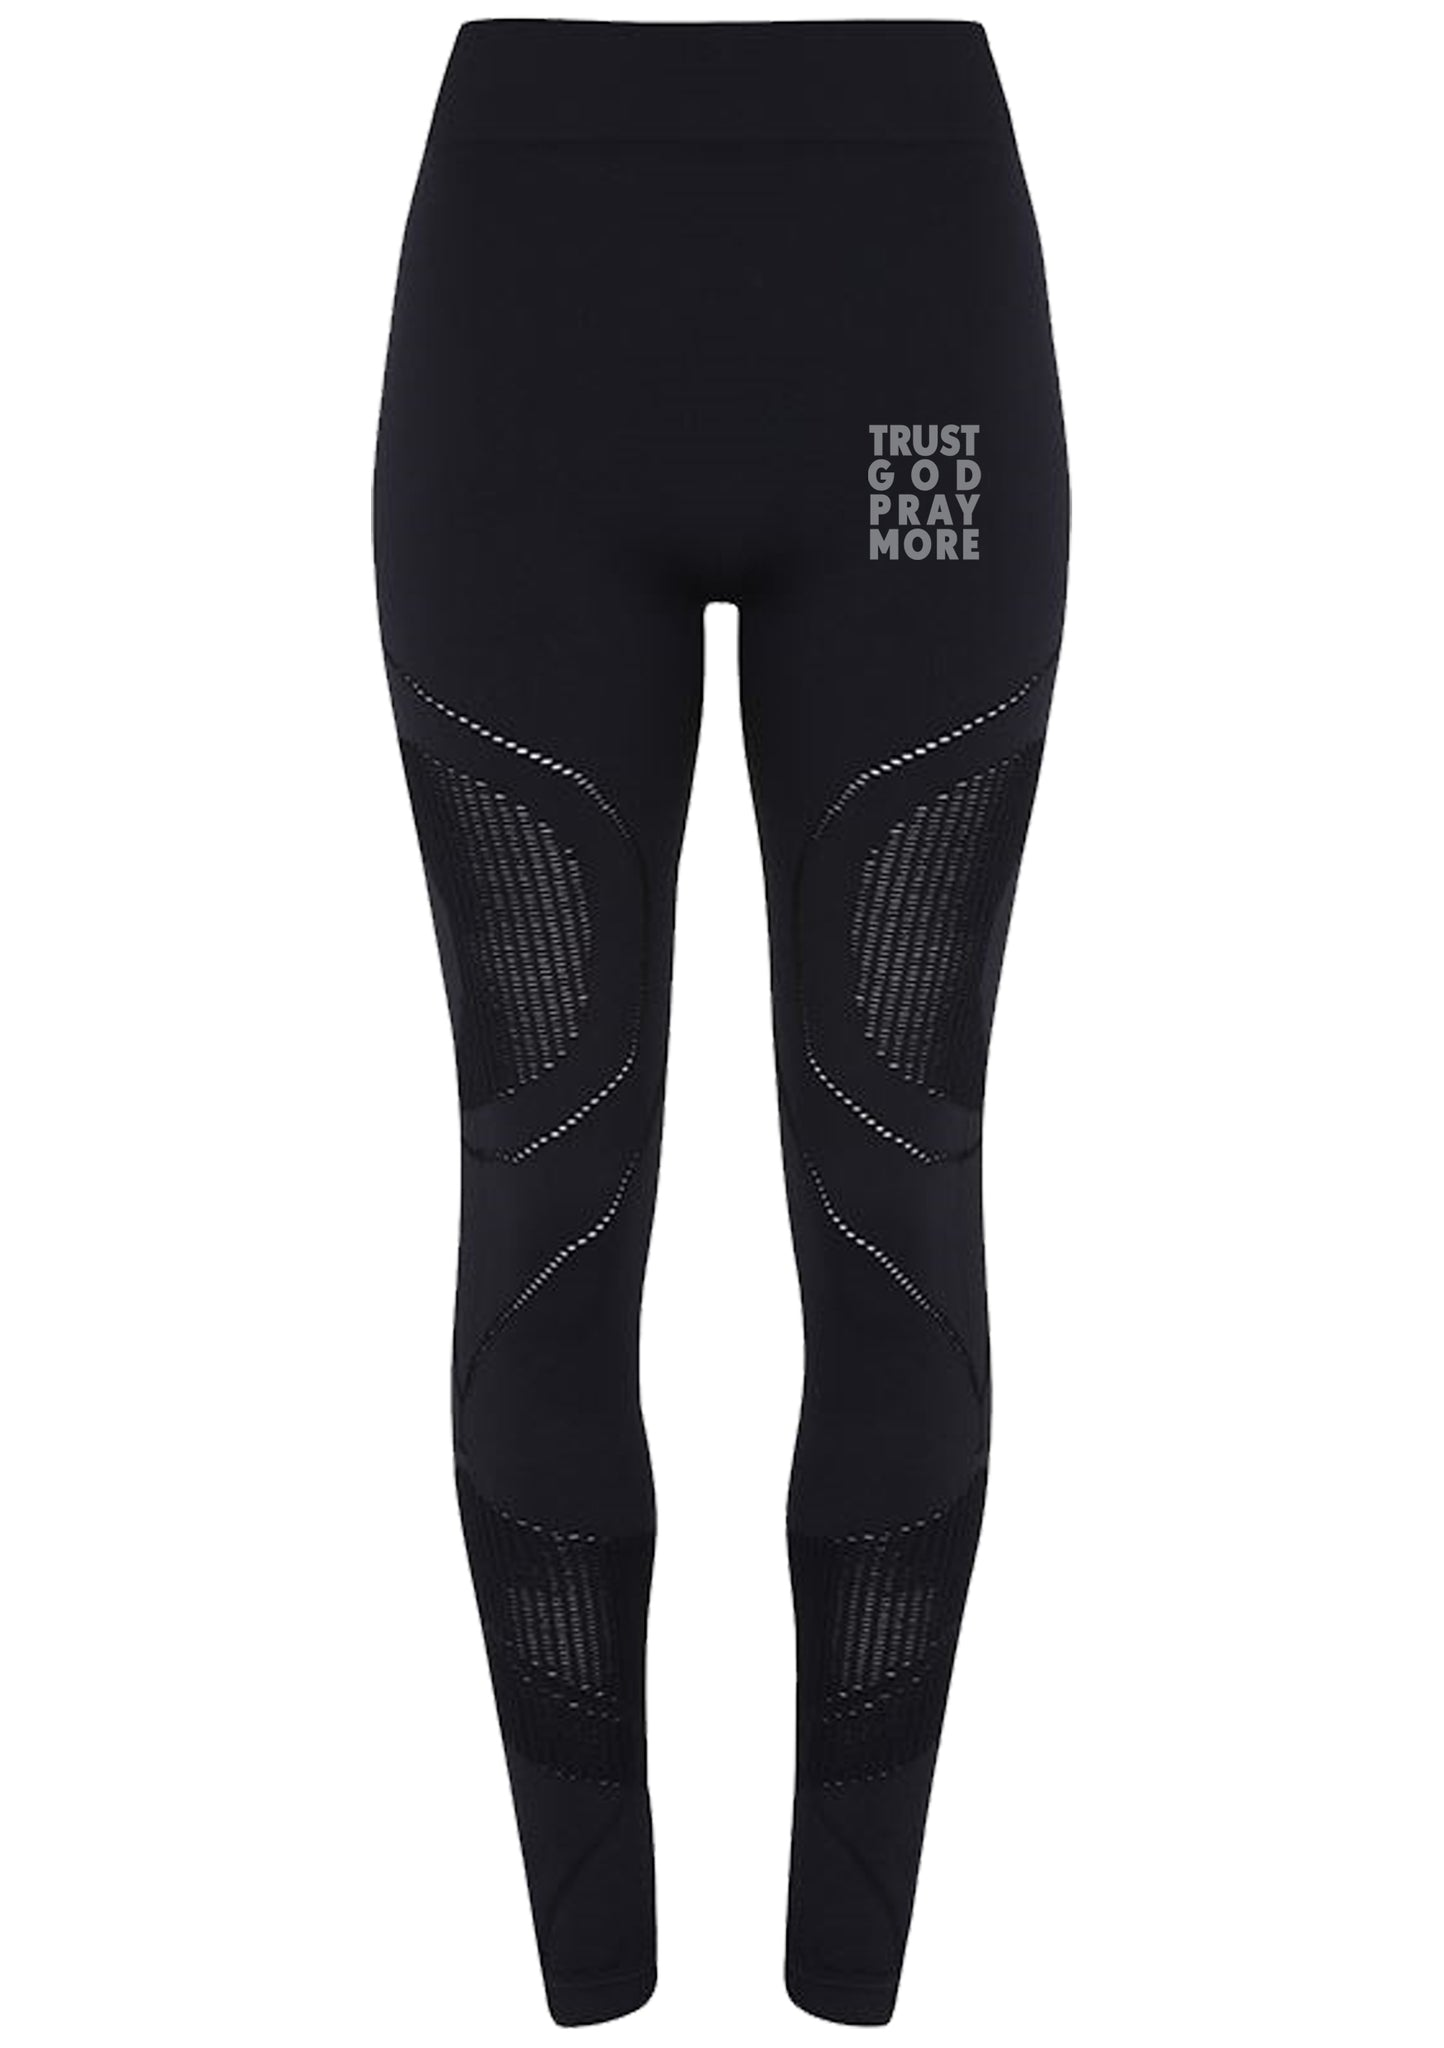 Womens TRUST GOD Seamless '3D fit' Multi-Sport Sculpt leggings